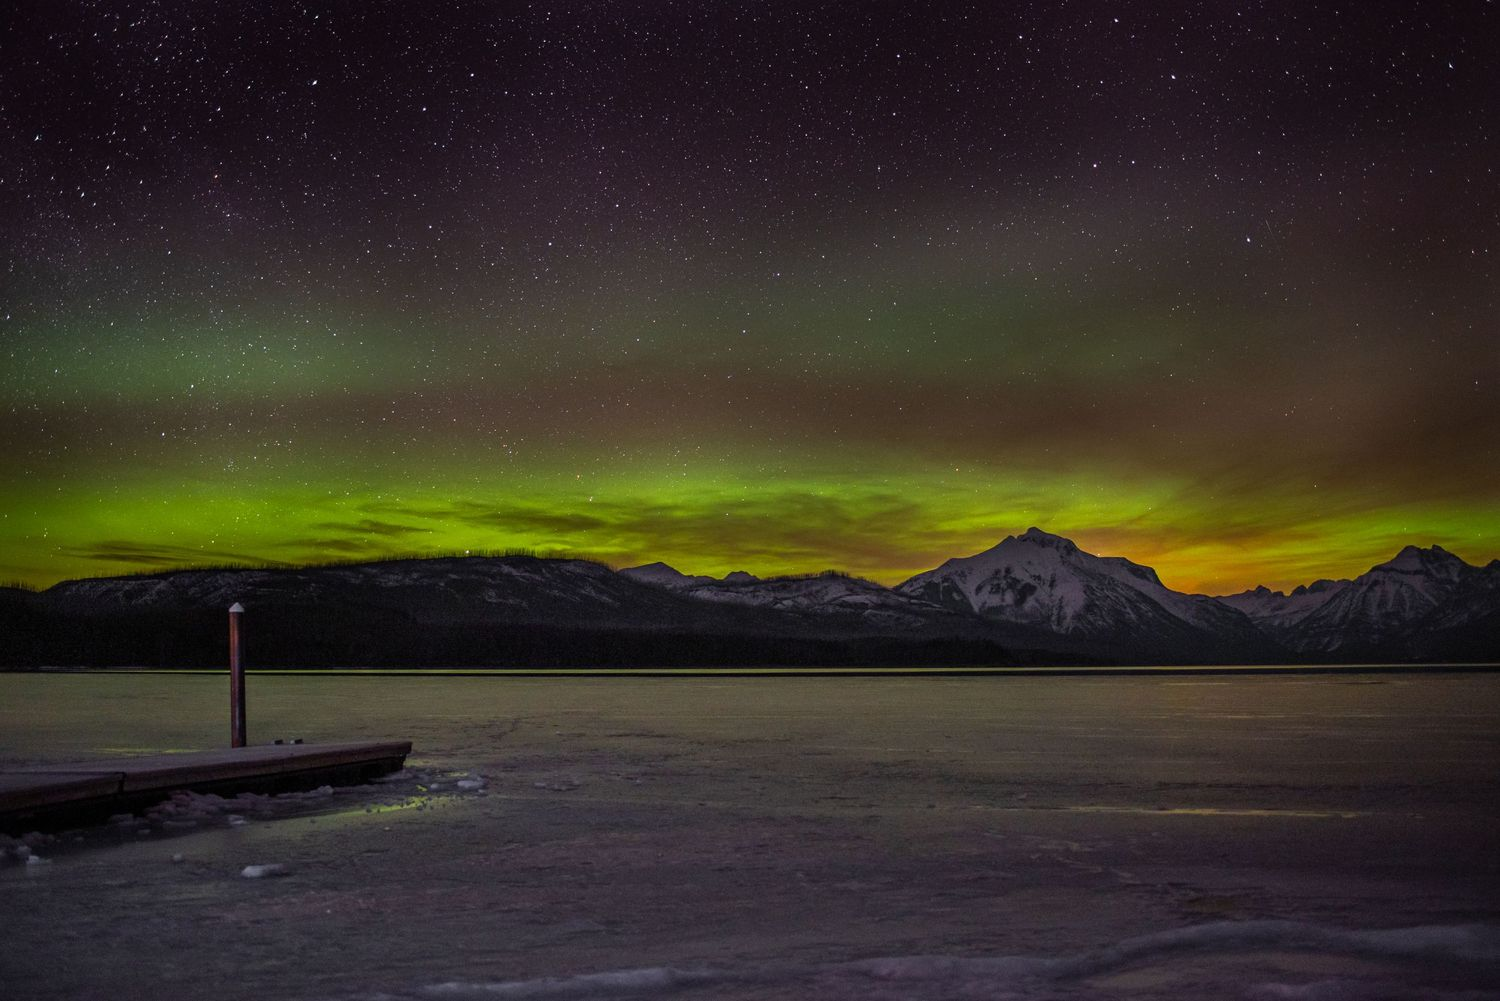 Northern Lights from Lake Mcdonald in Glacier National Park, March 2021